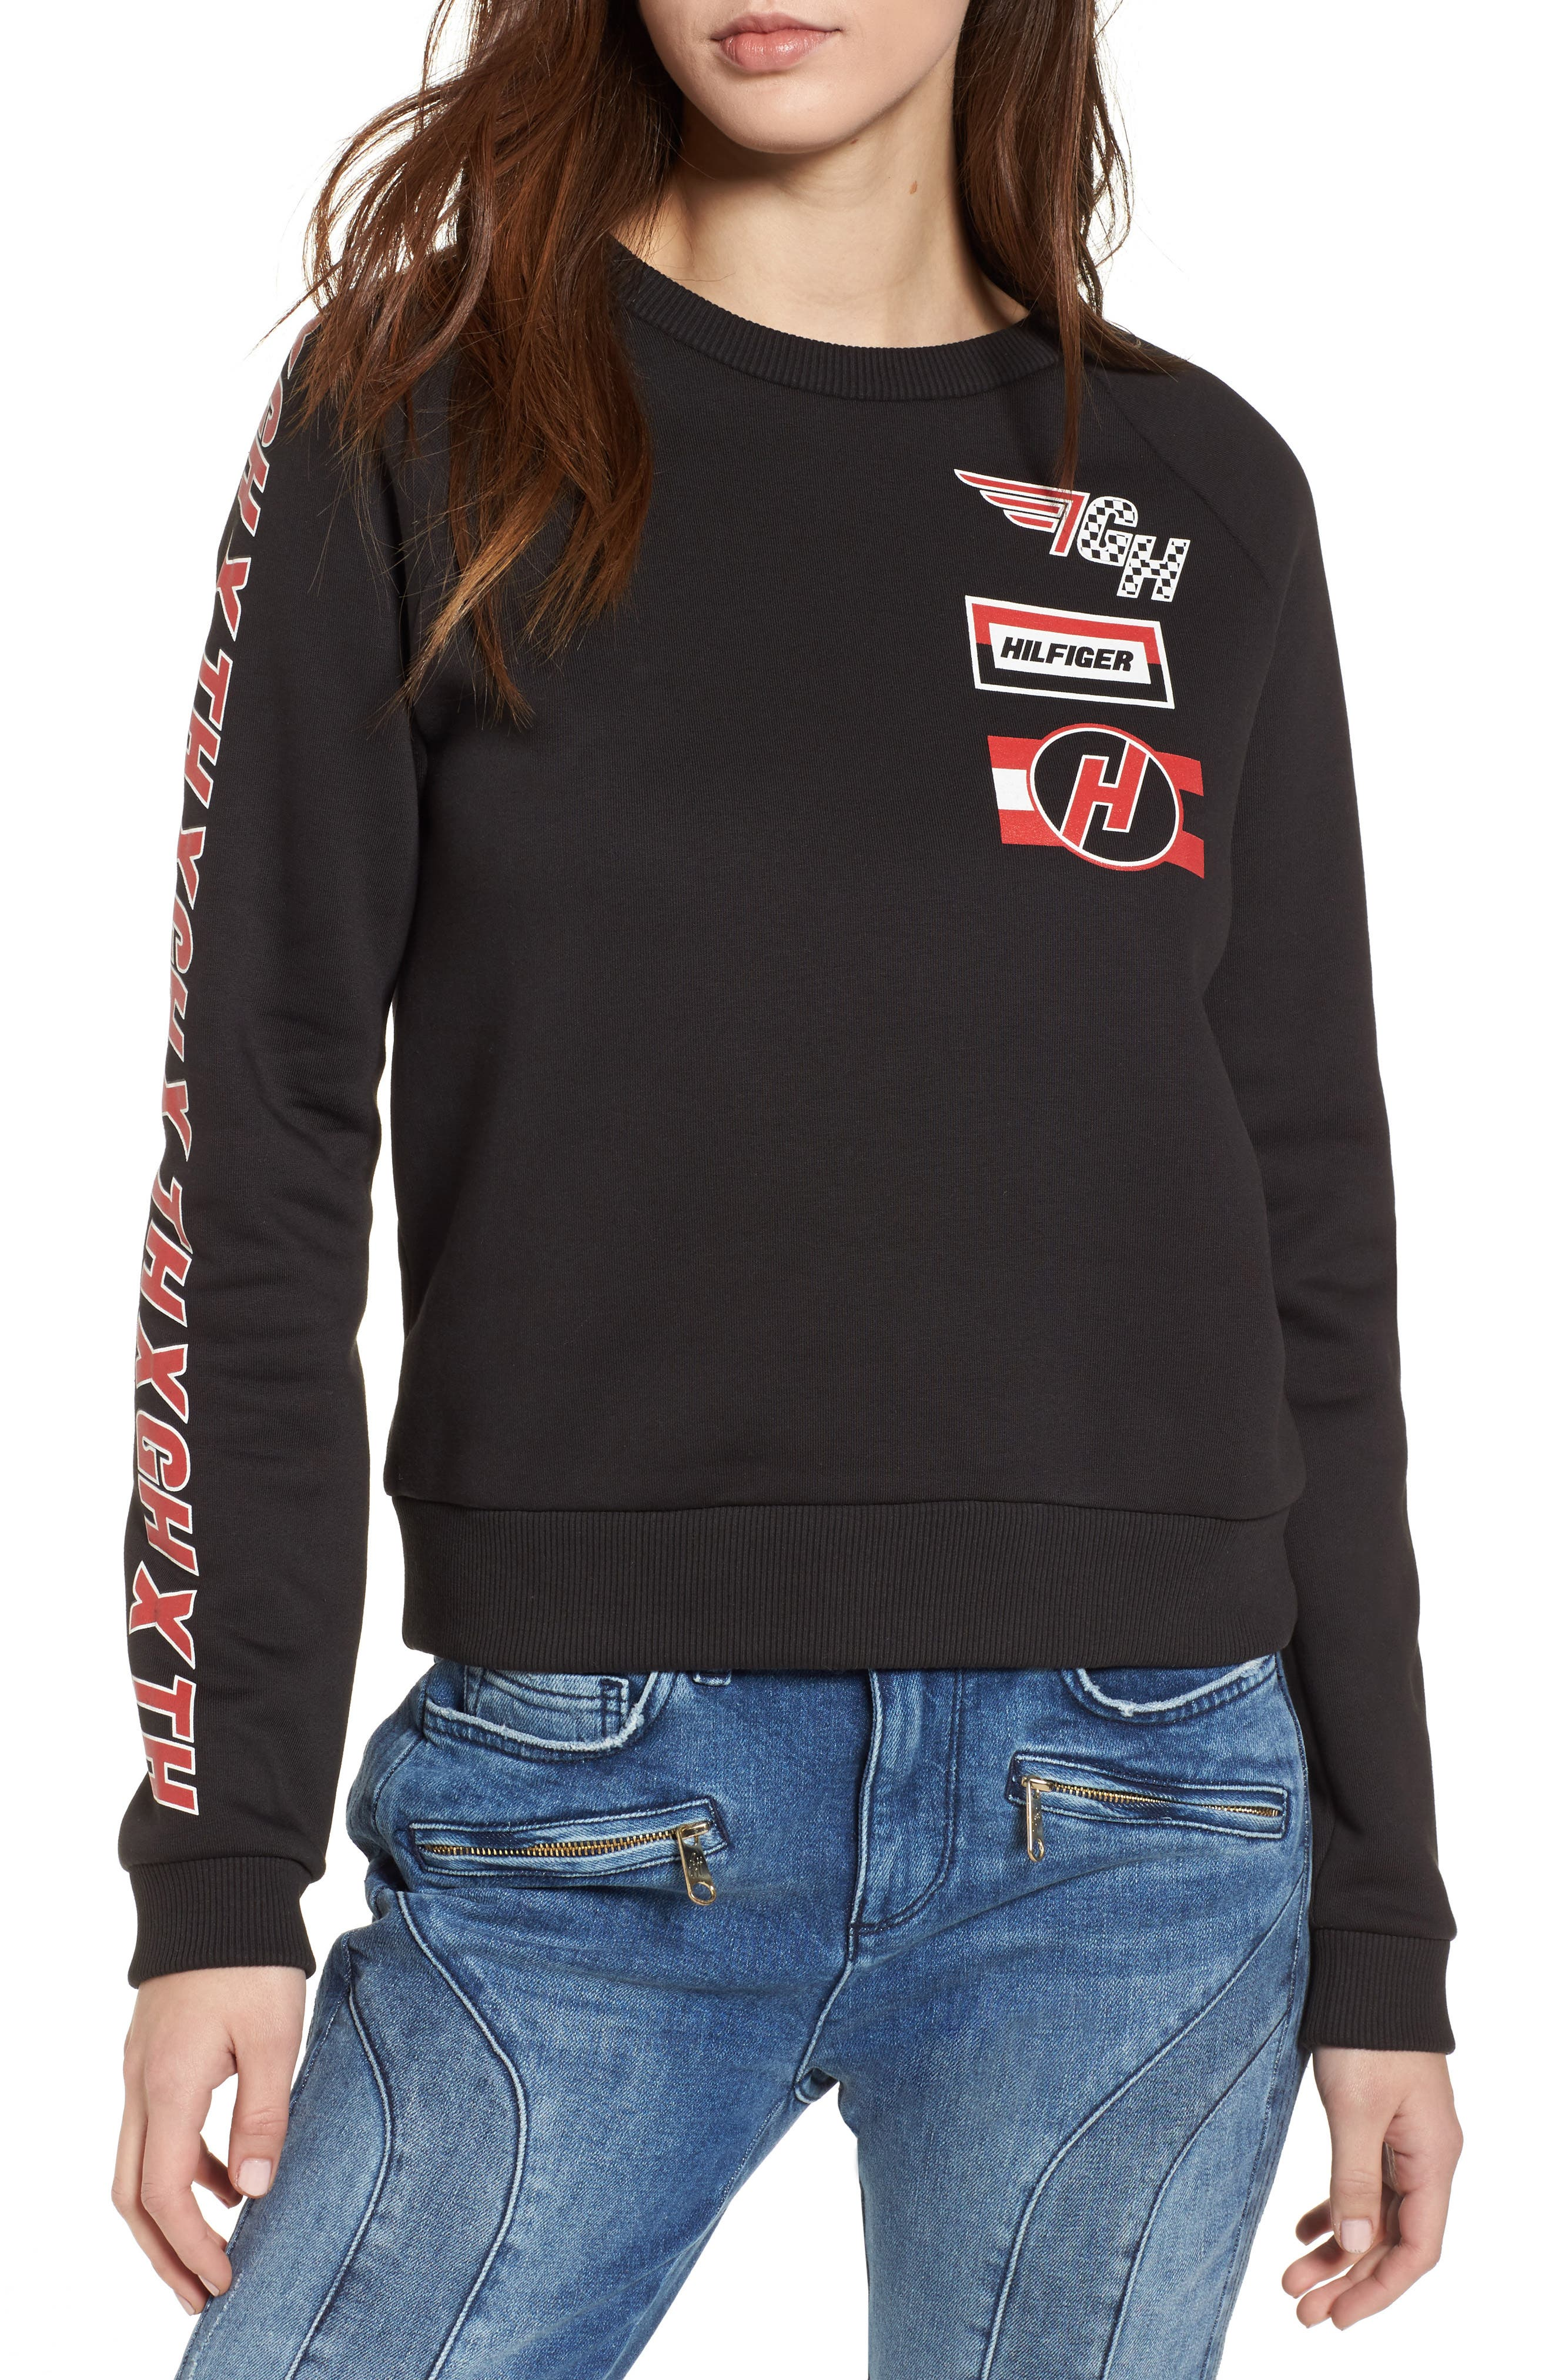 x Gigi Hadid Team Sweatshirt,                         Main,                         color, 004